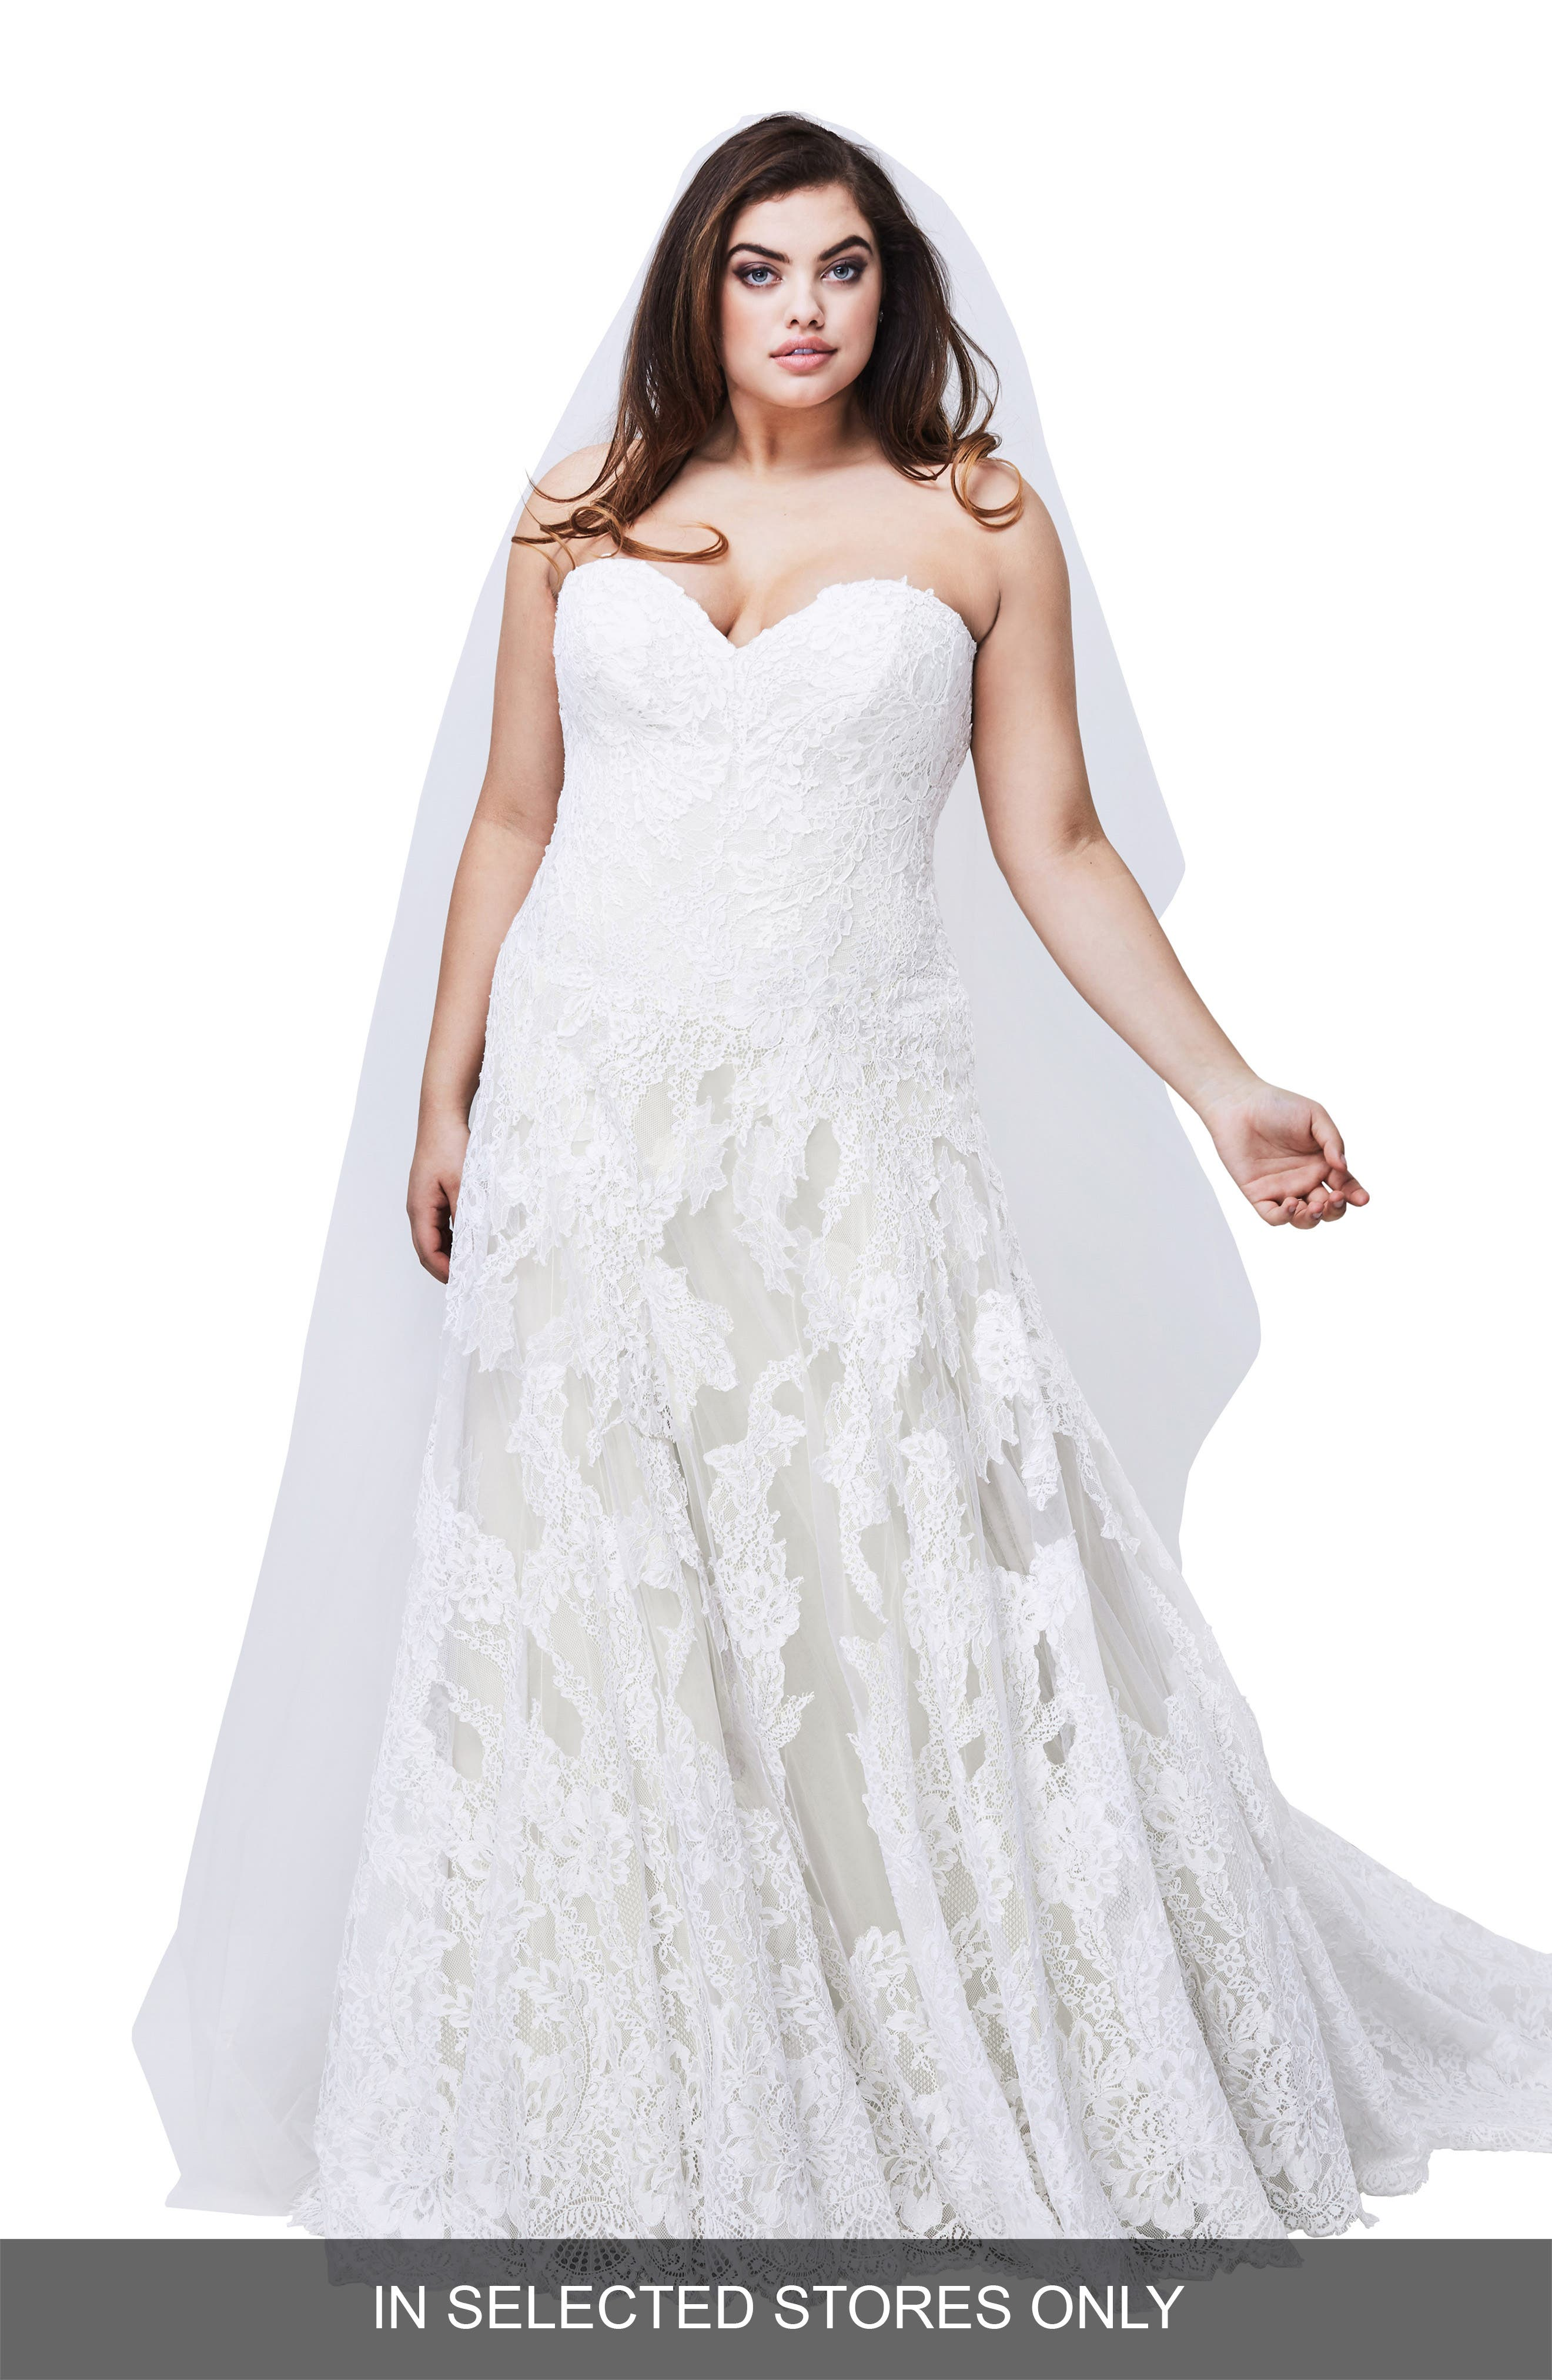 Lyric Strapless Lace Gown,                         Main,                         color, IVORY/ IVORY